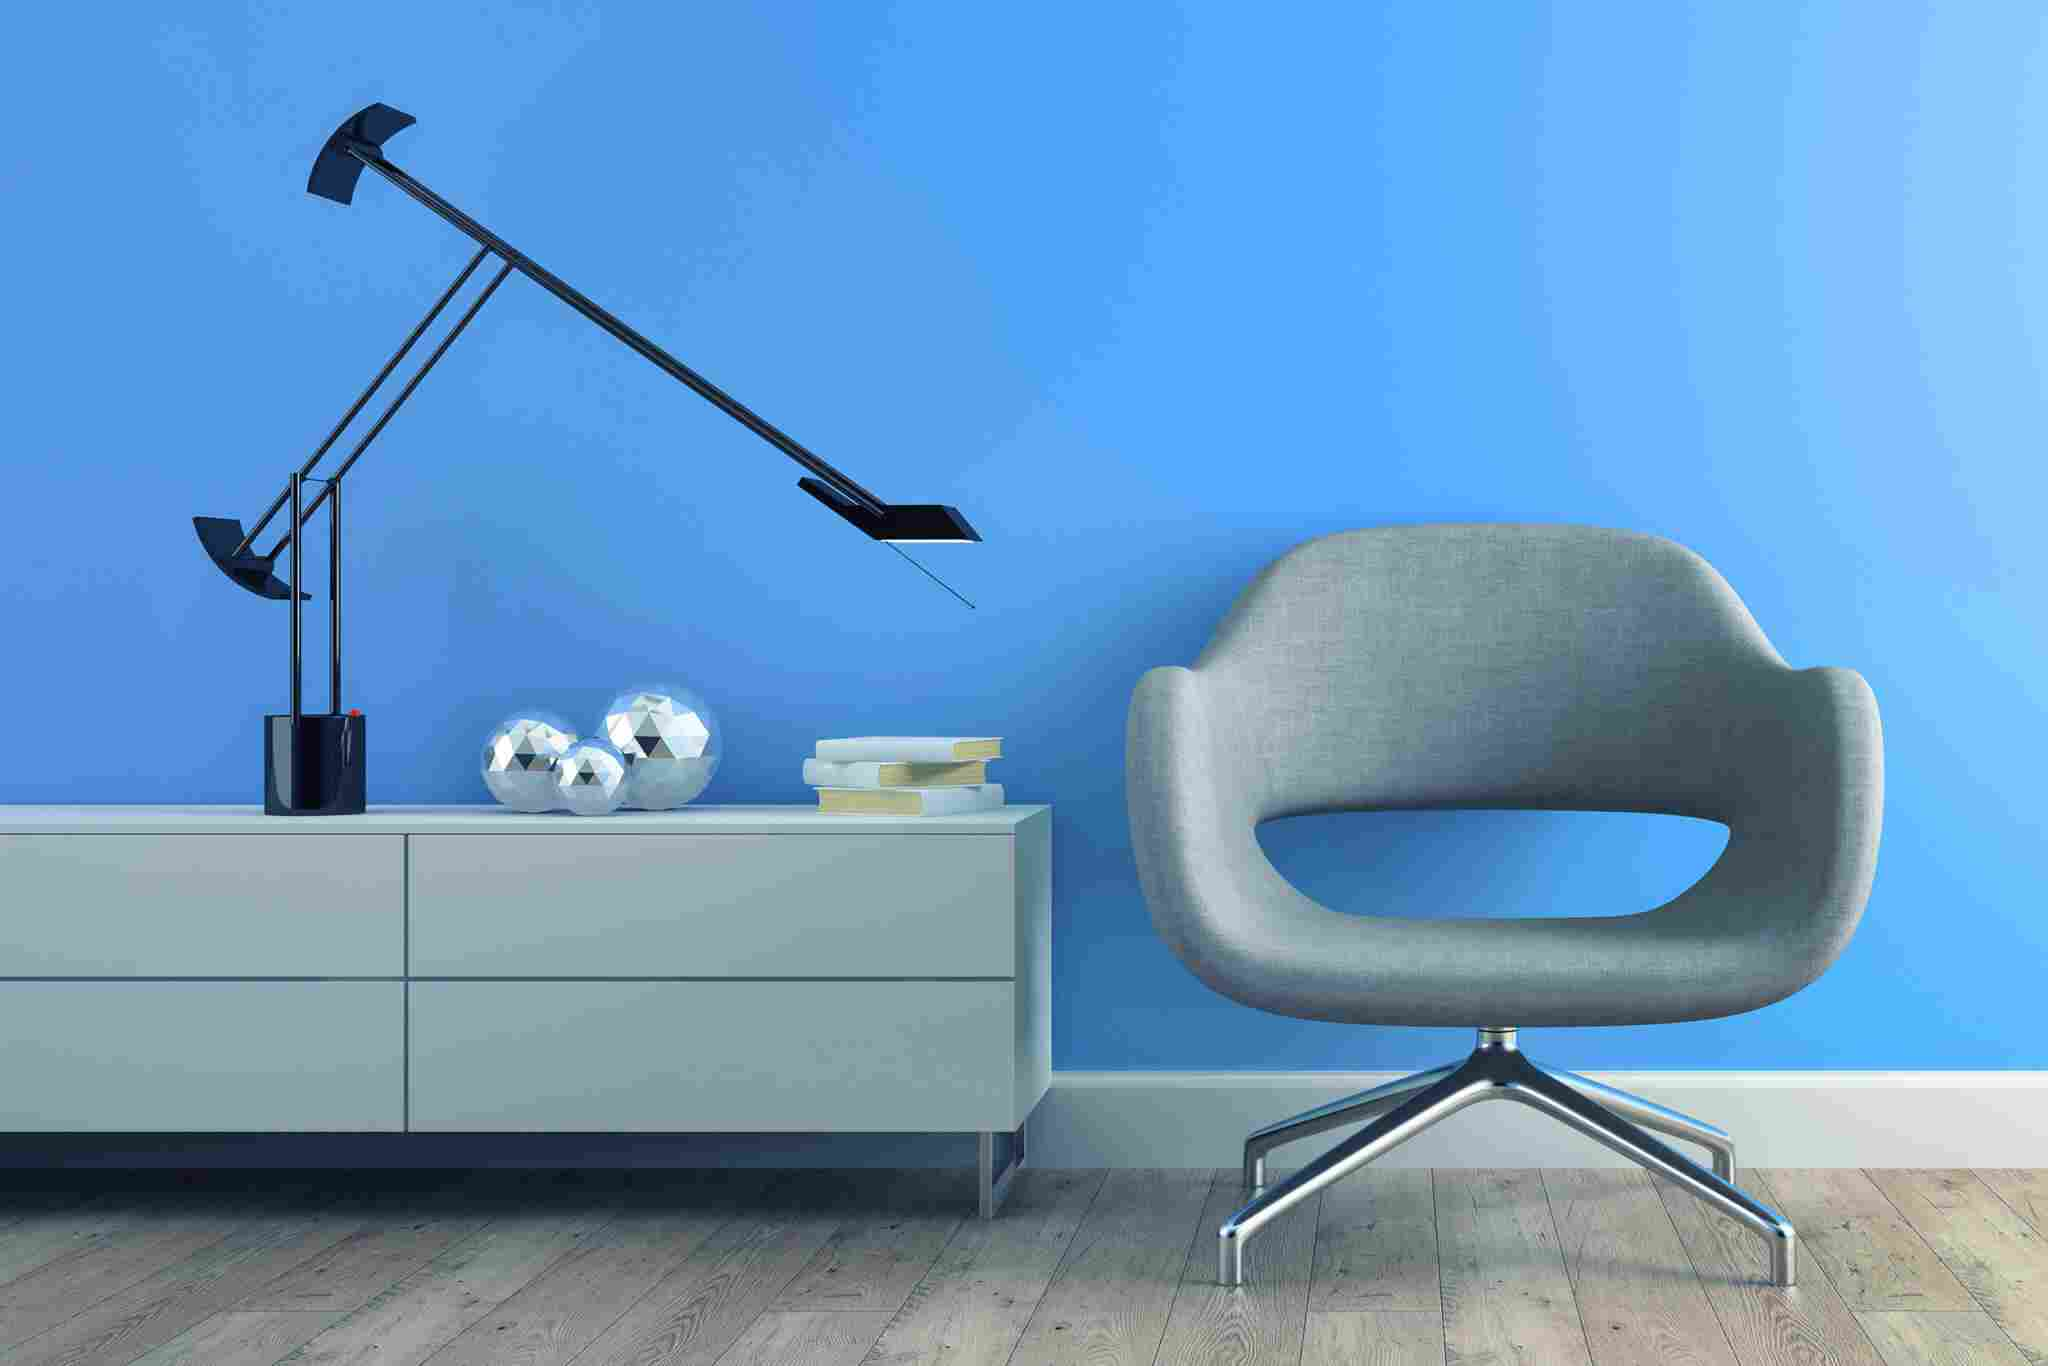 https://www.pocketworth.in/wp-content/uploads/2017/05/image-chair-blue-wall.jpg